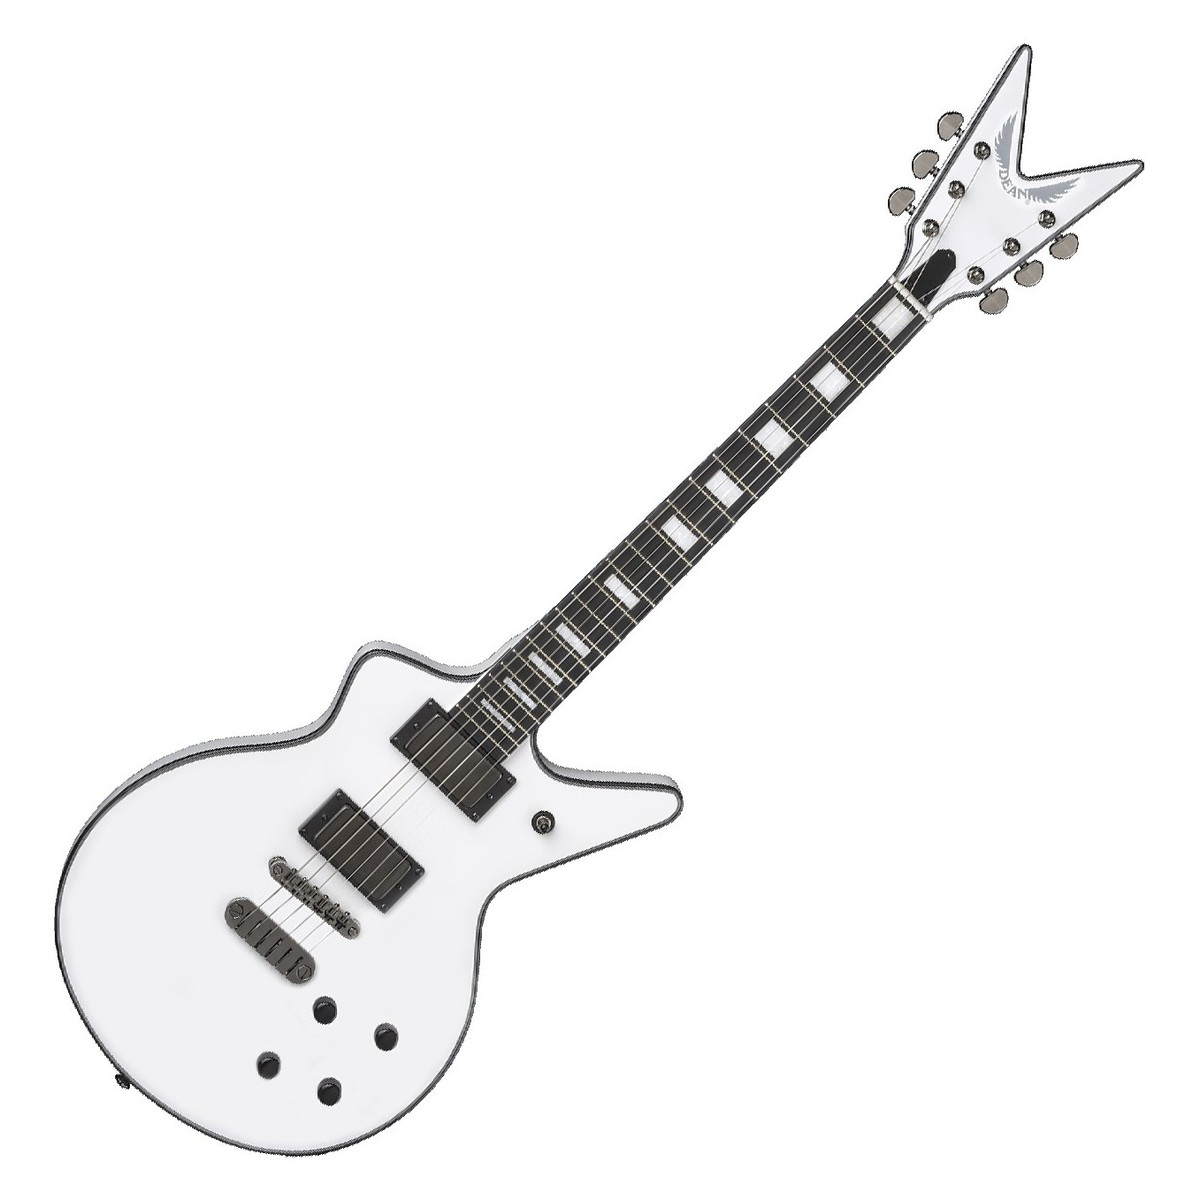 Dean cadillac 1980 electric guitar classic white 1 loading zoom